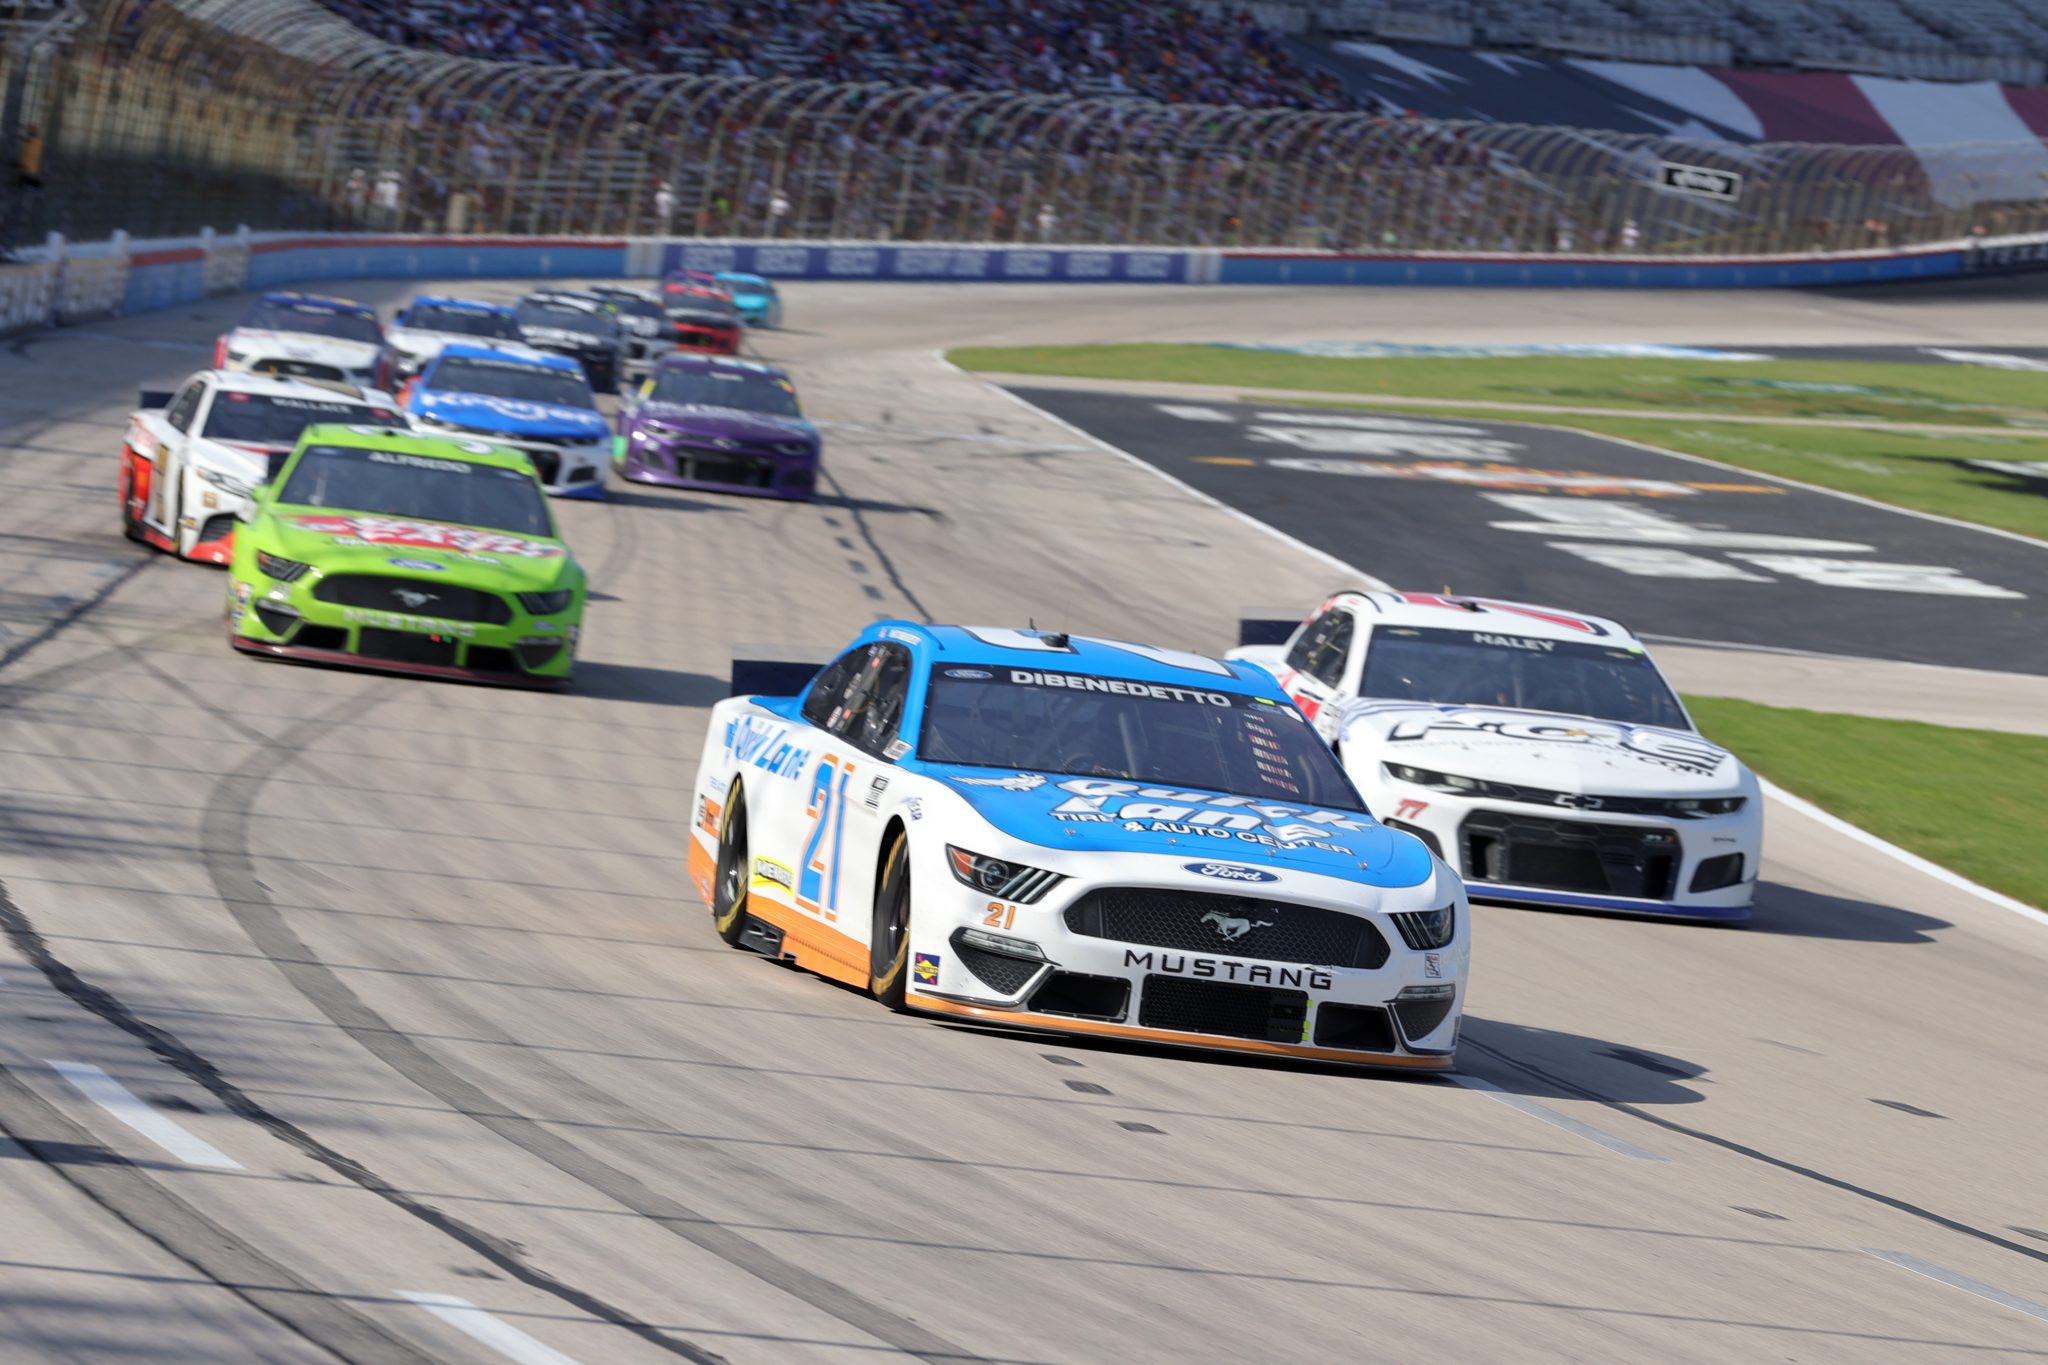 FORT WORTH, TEXAS - JUNE 13: Matt DiBenedetto, driver of the #21 Quick Lane Tire & Auto Center Ford, leads the field during the NASCAR All-Star Open at Texas Motor Speedway on June 13, 2021 in Fort Worth, Texas. (Photo by Carmen Mandato/Getty Images)   Getty Images